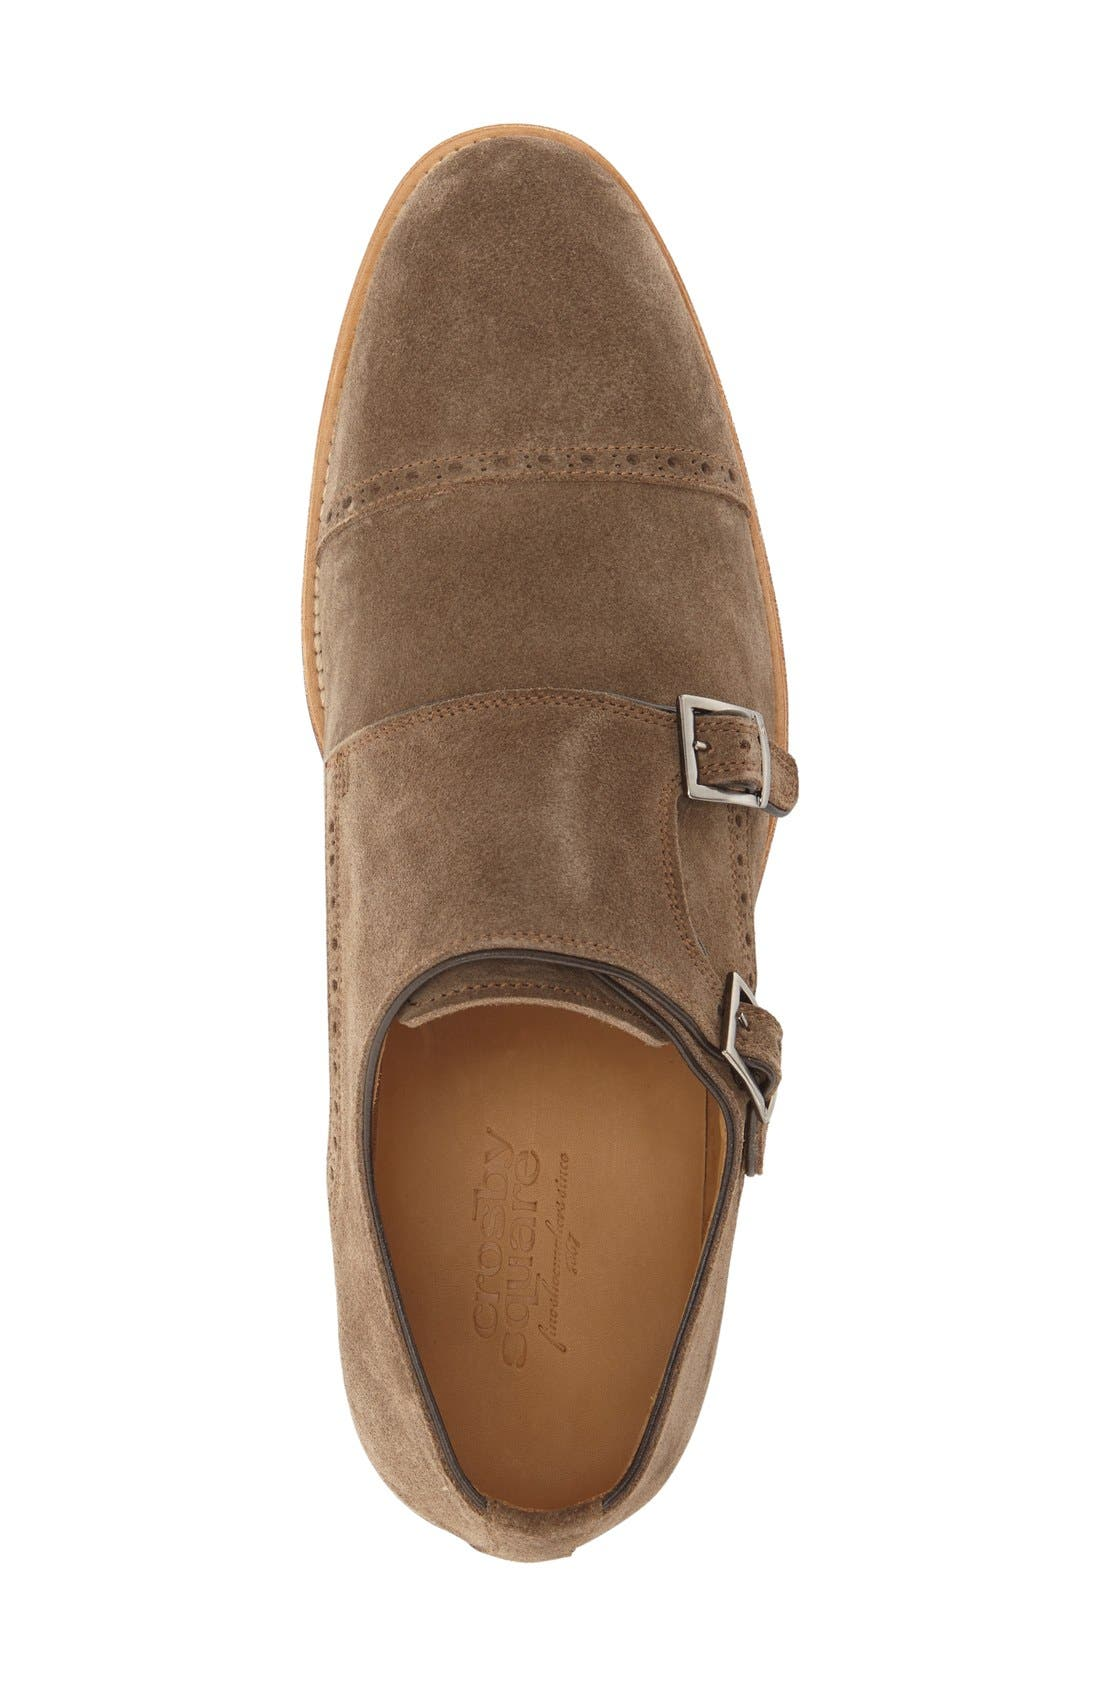 Alternate Image 3  - Crosby Square 'Allen' Double Monk Strap Shoe (Men)